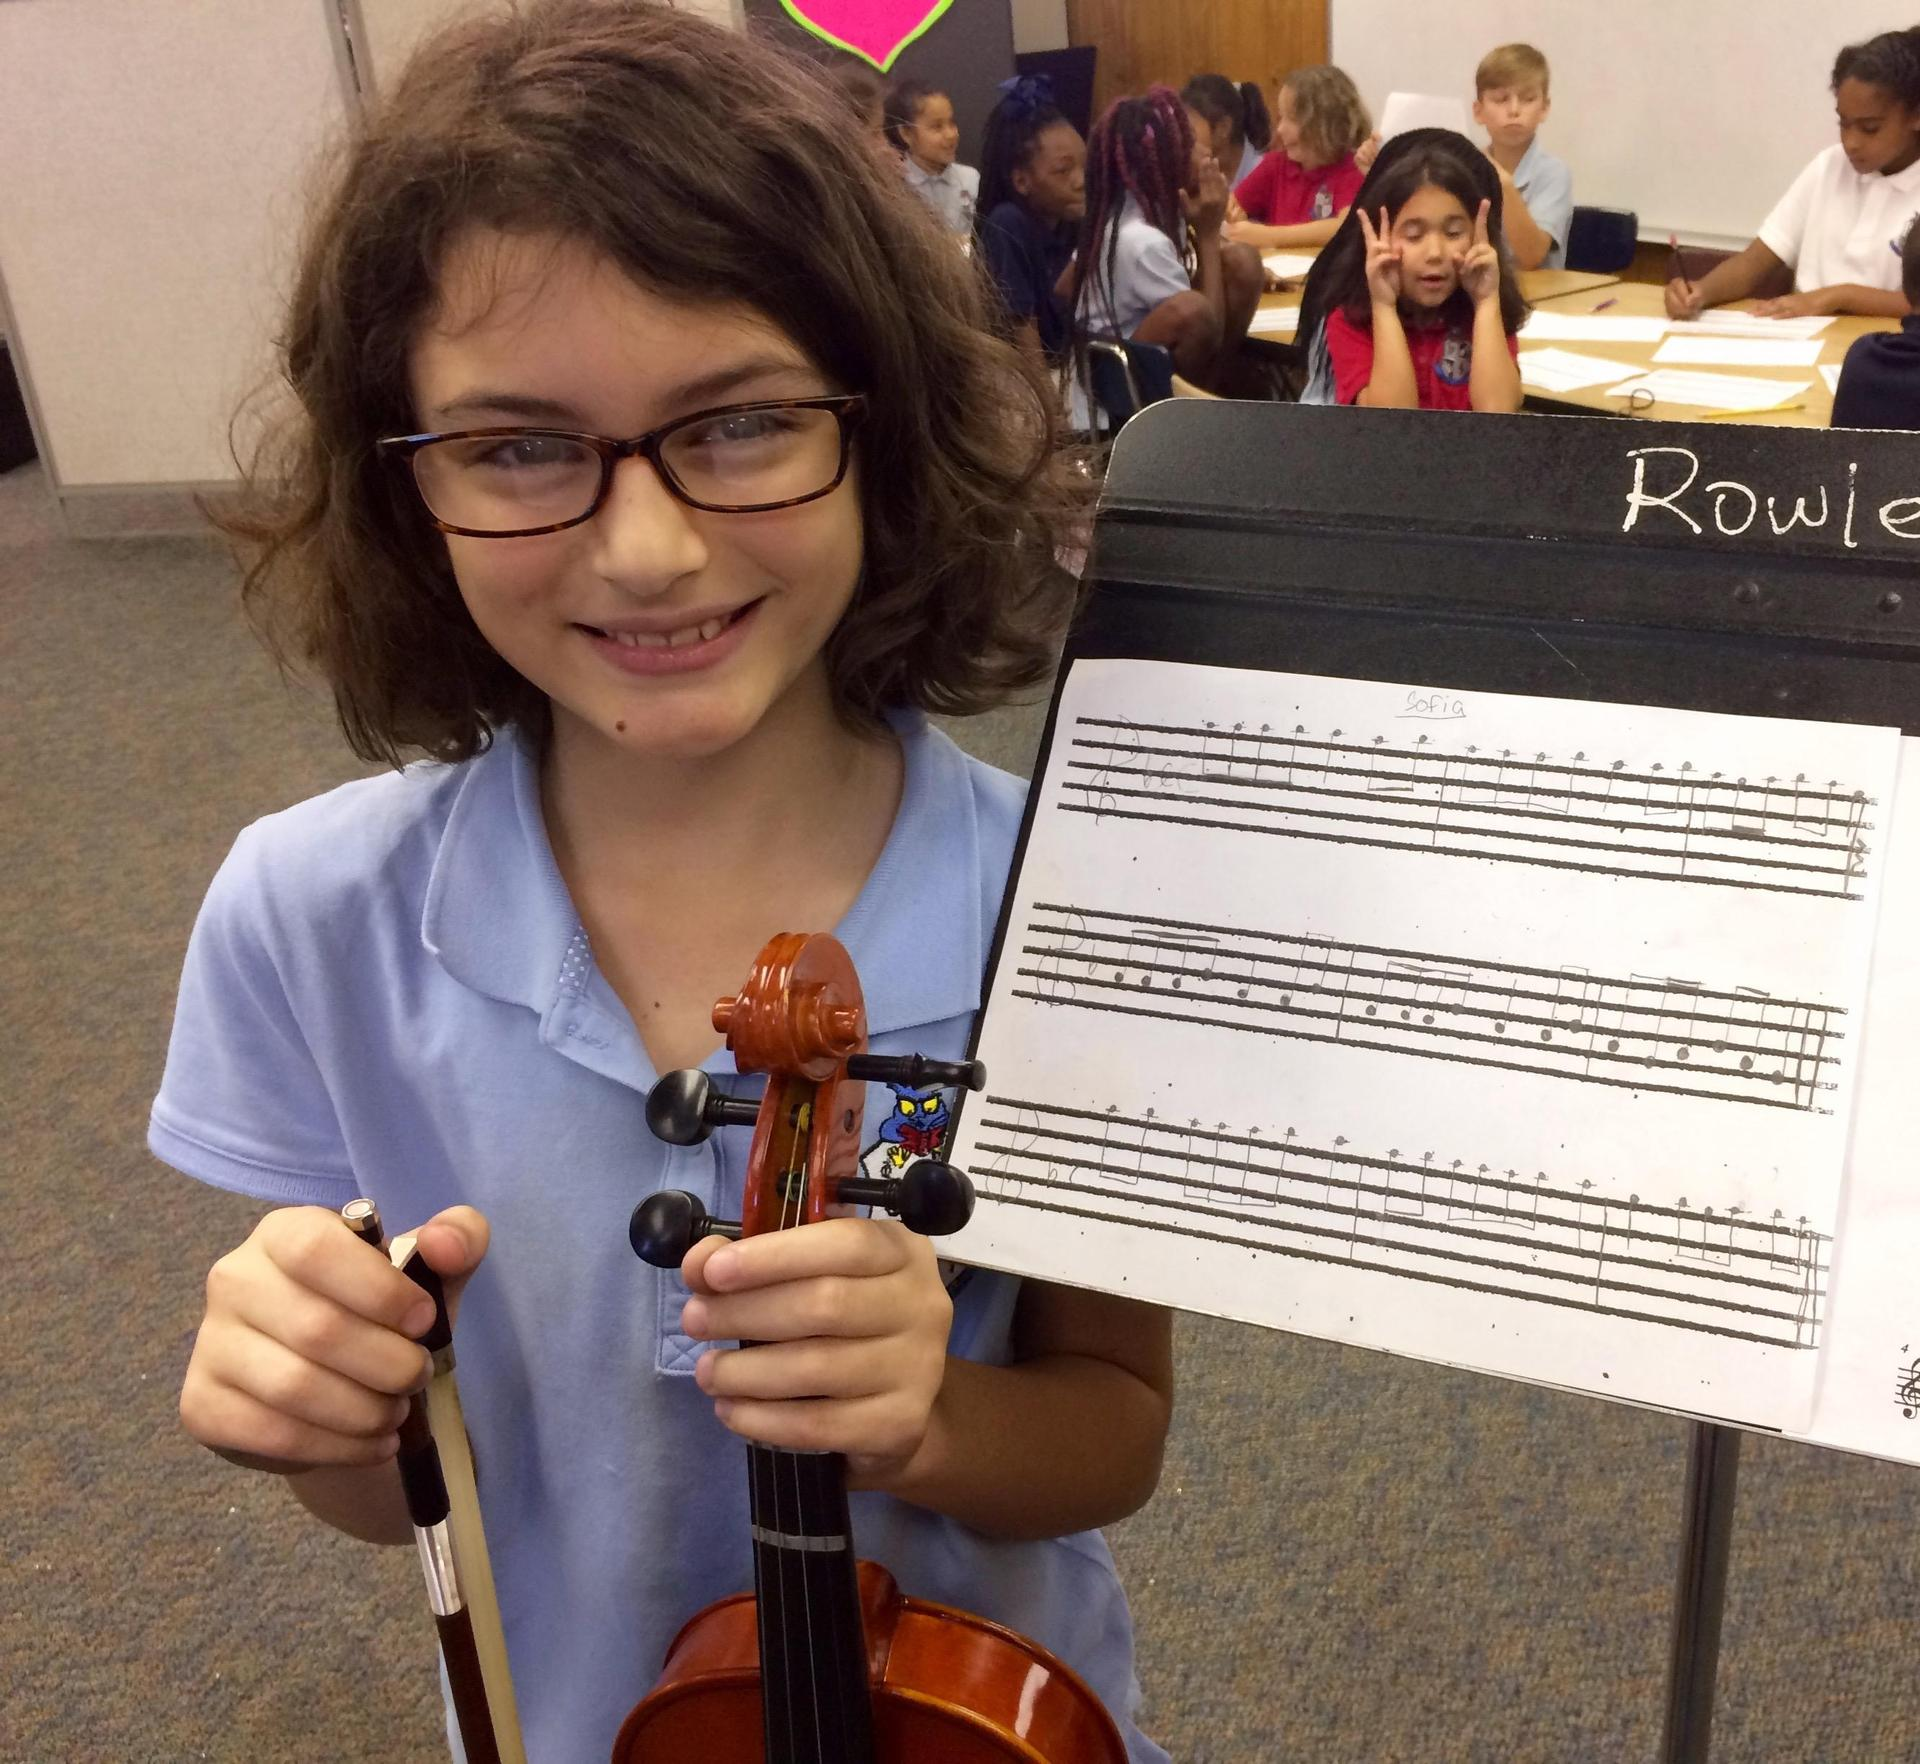 Student with violin